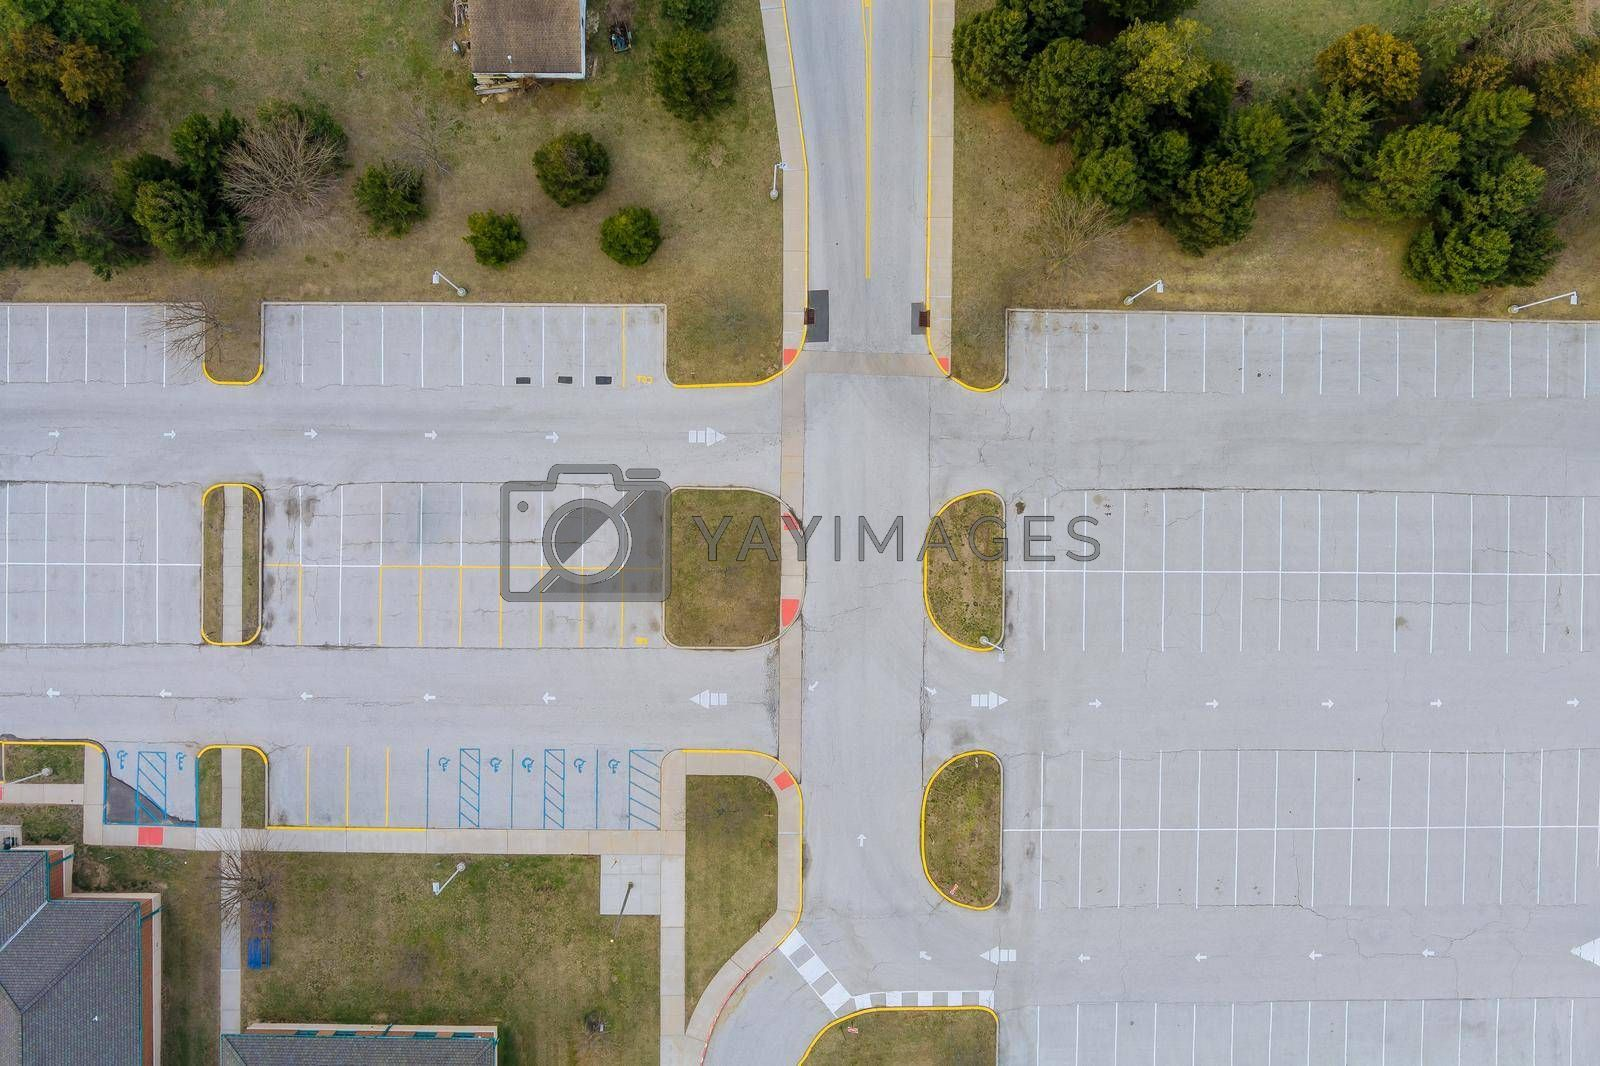 Aerial view of an empty places parking lot large